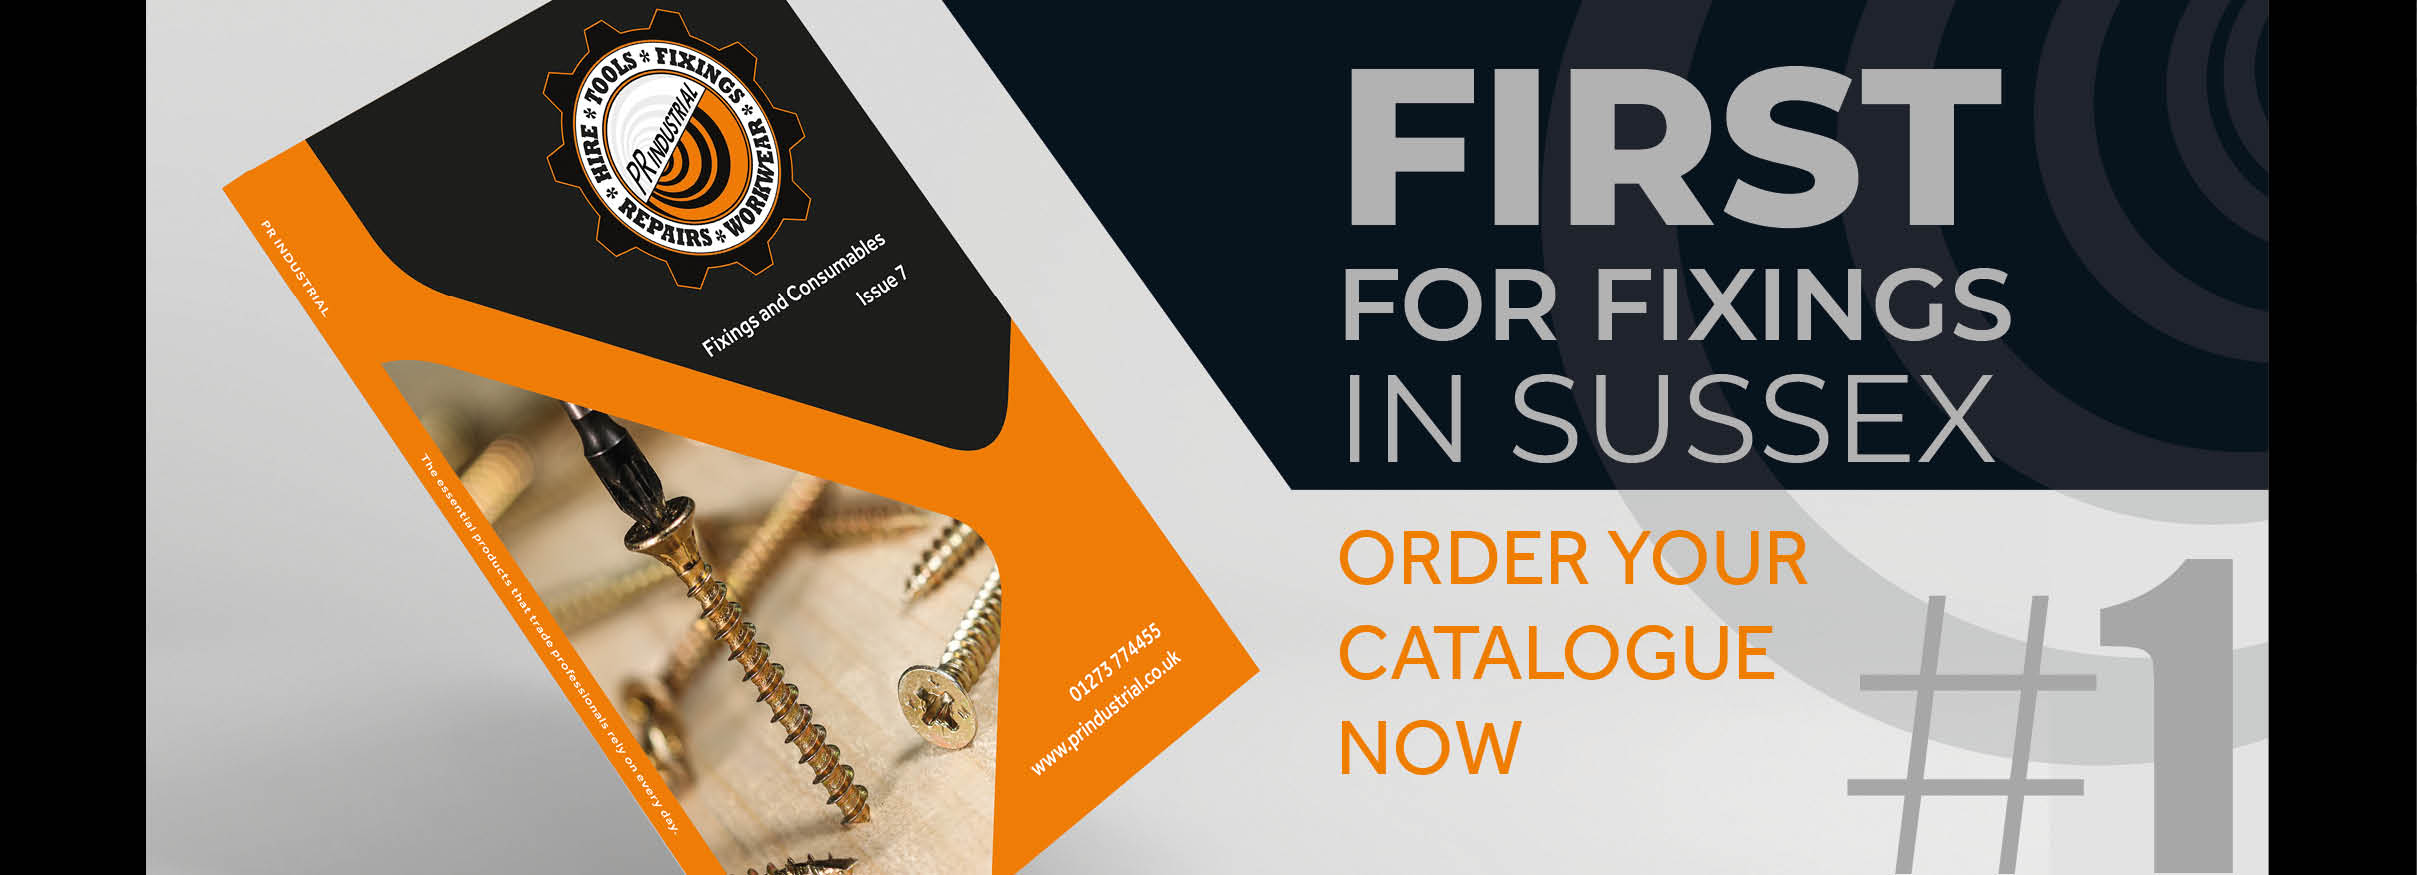 Order your fixings catalogue - stainless steel fixings, stainless steels bolts, stainless steel washers, marine grade stainless steel